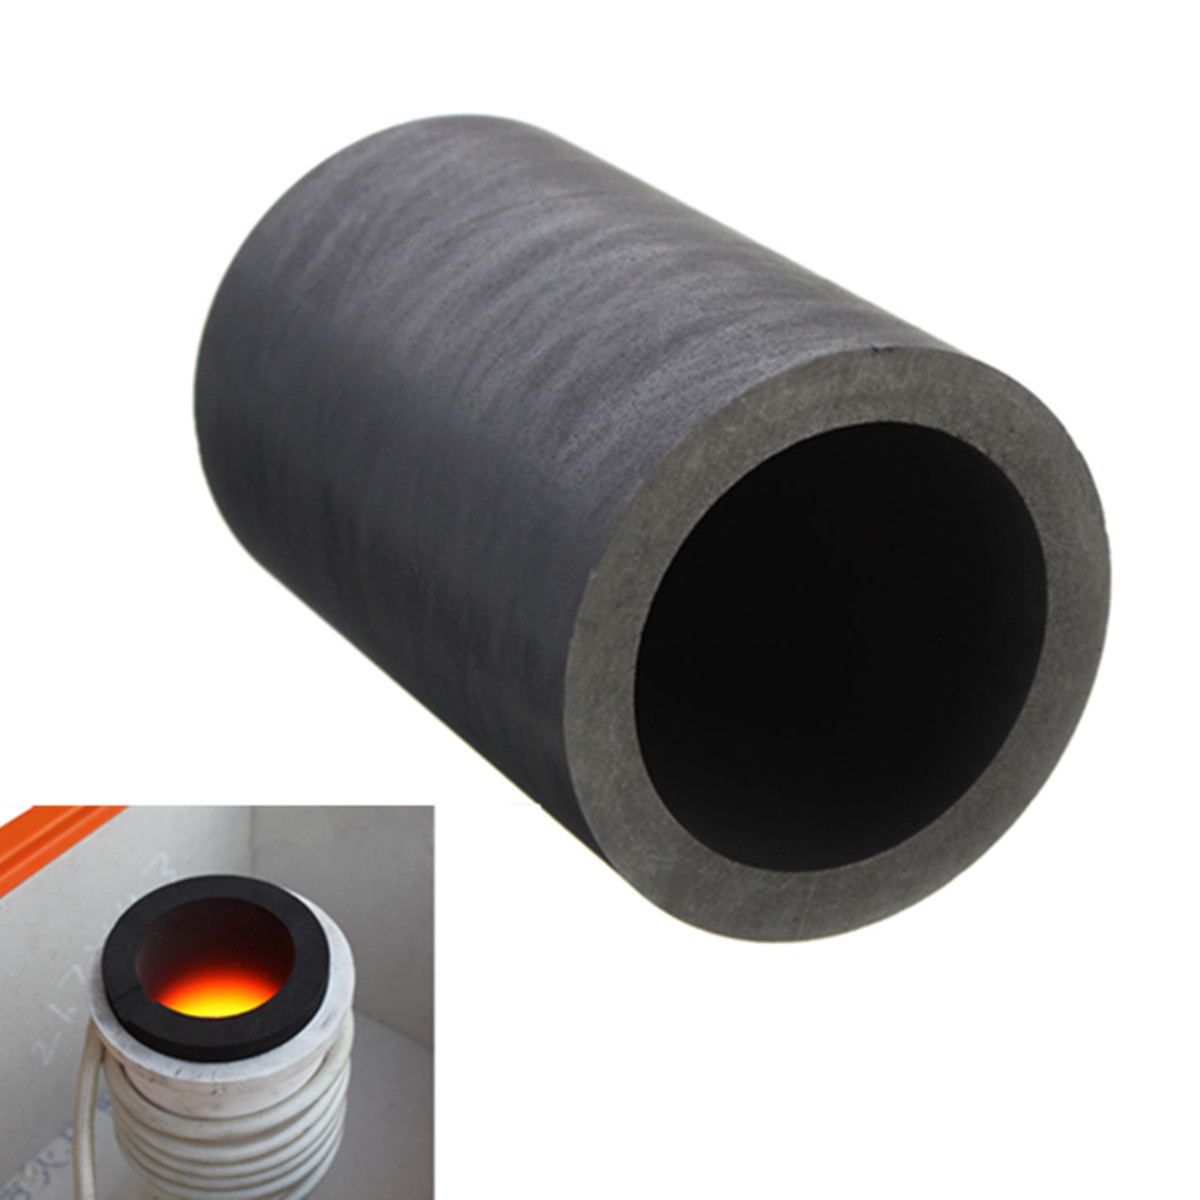 6 Size Pure Graphite Crucible Cup Propane Torch Melting Gold Silver Copper Metal